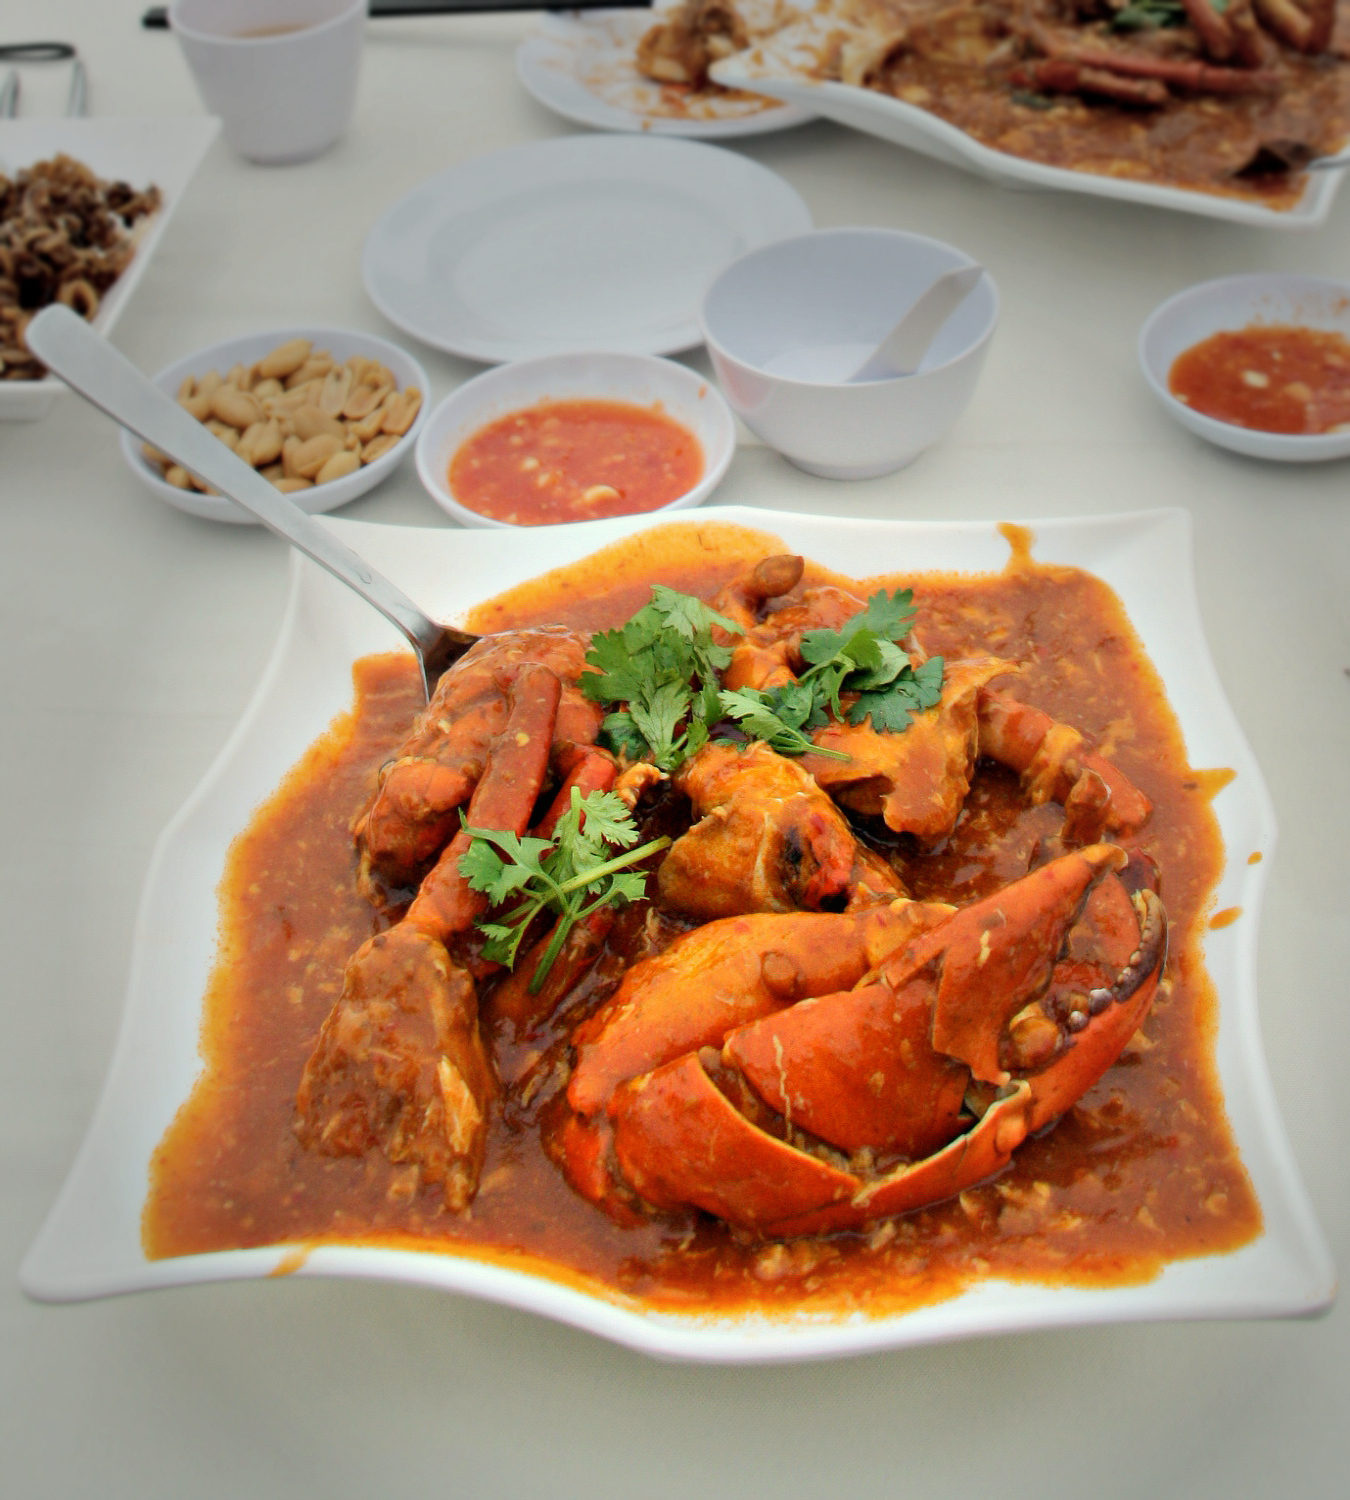 Singapore Chili Crab, Dishes To Eat In Singapore